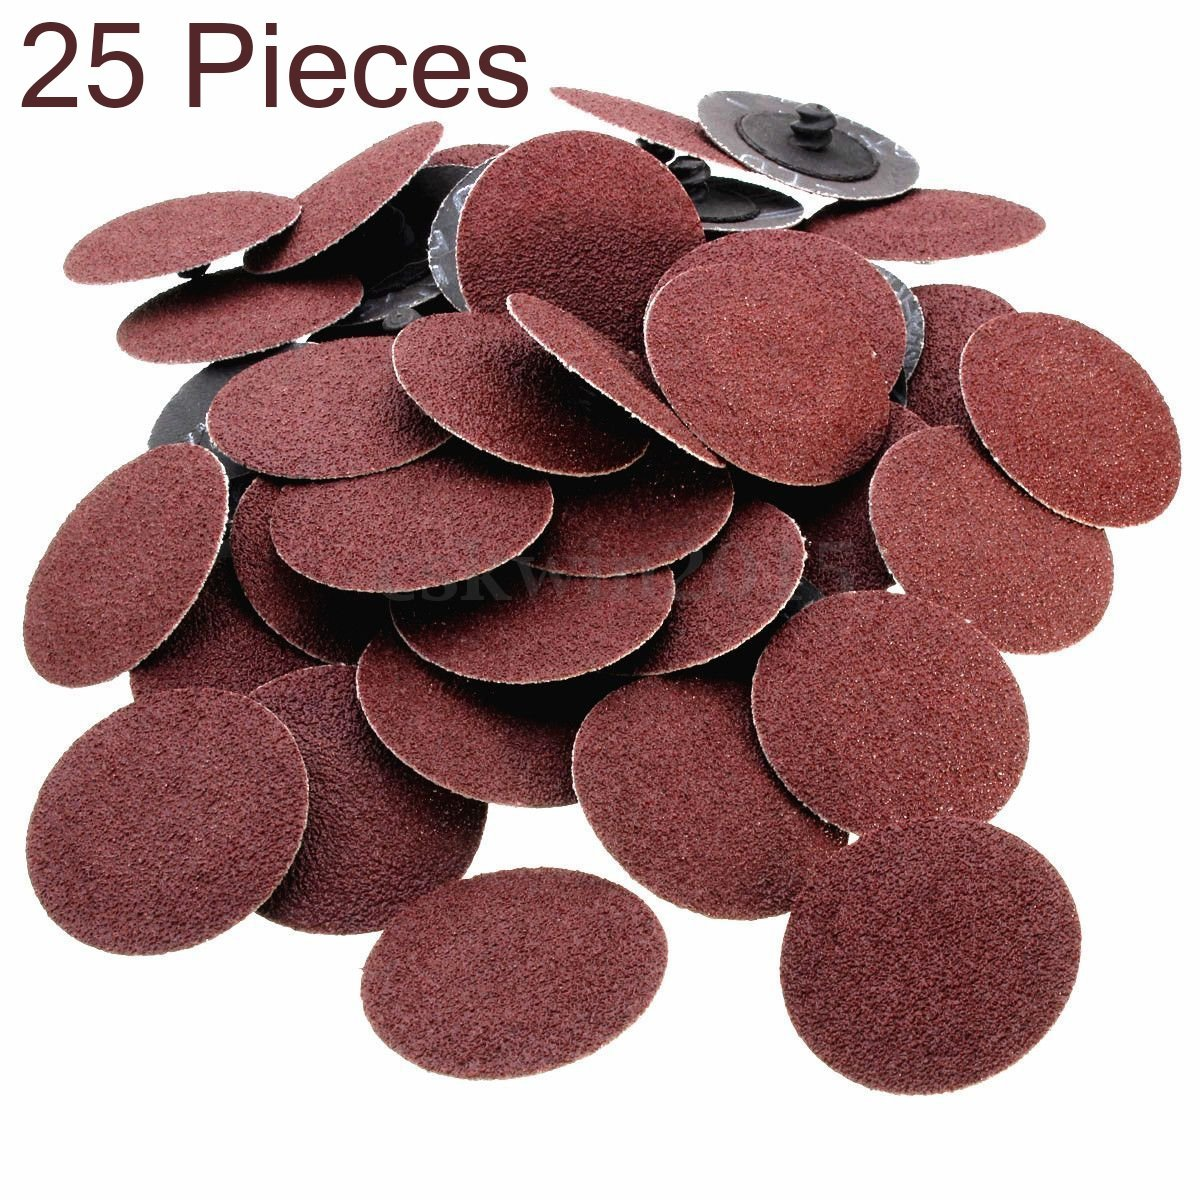 50-Pc 2-Inch Roll Lock Sanding Disc 24 36 60 80 120 Grit Assortment with Mandrel